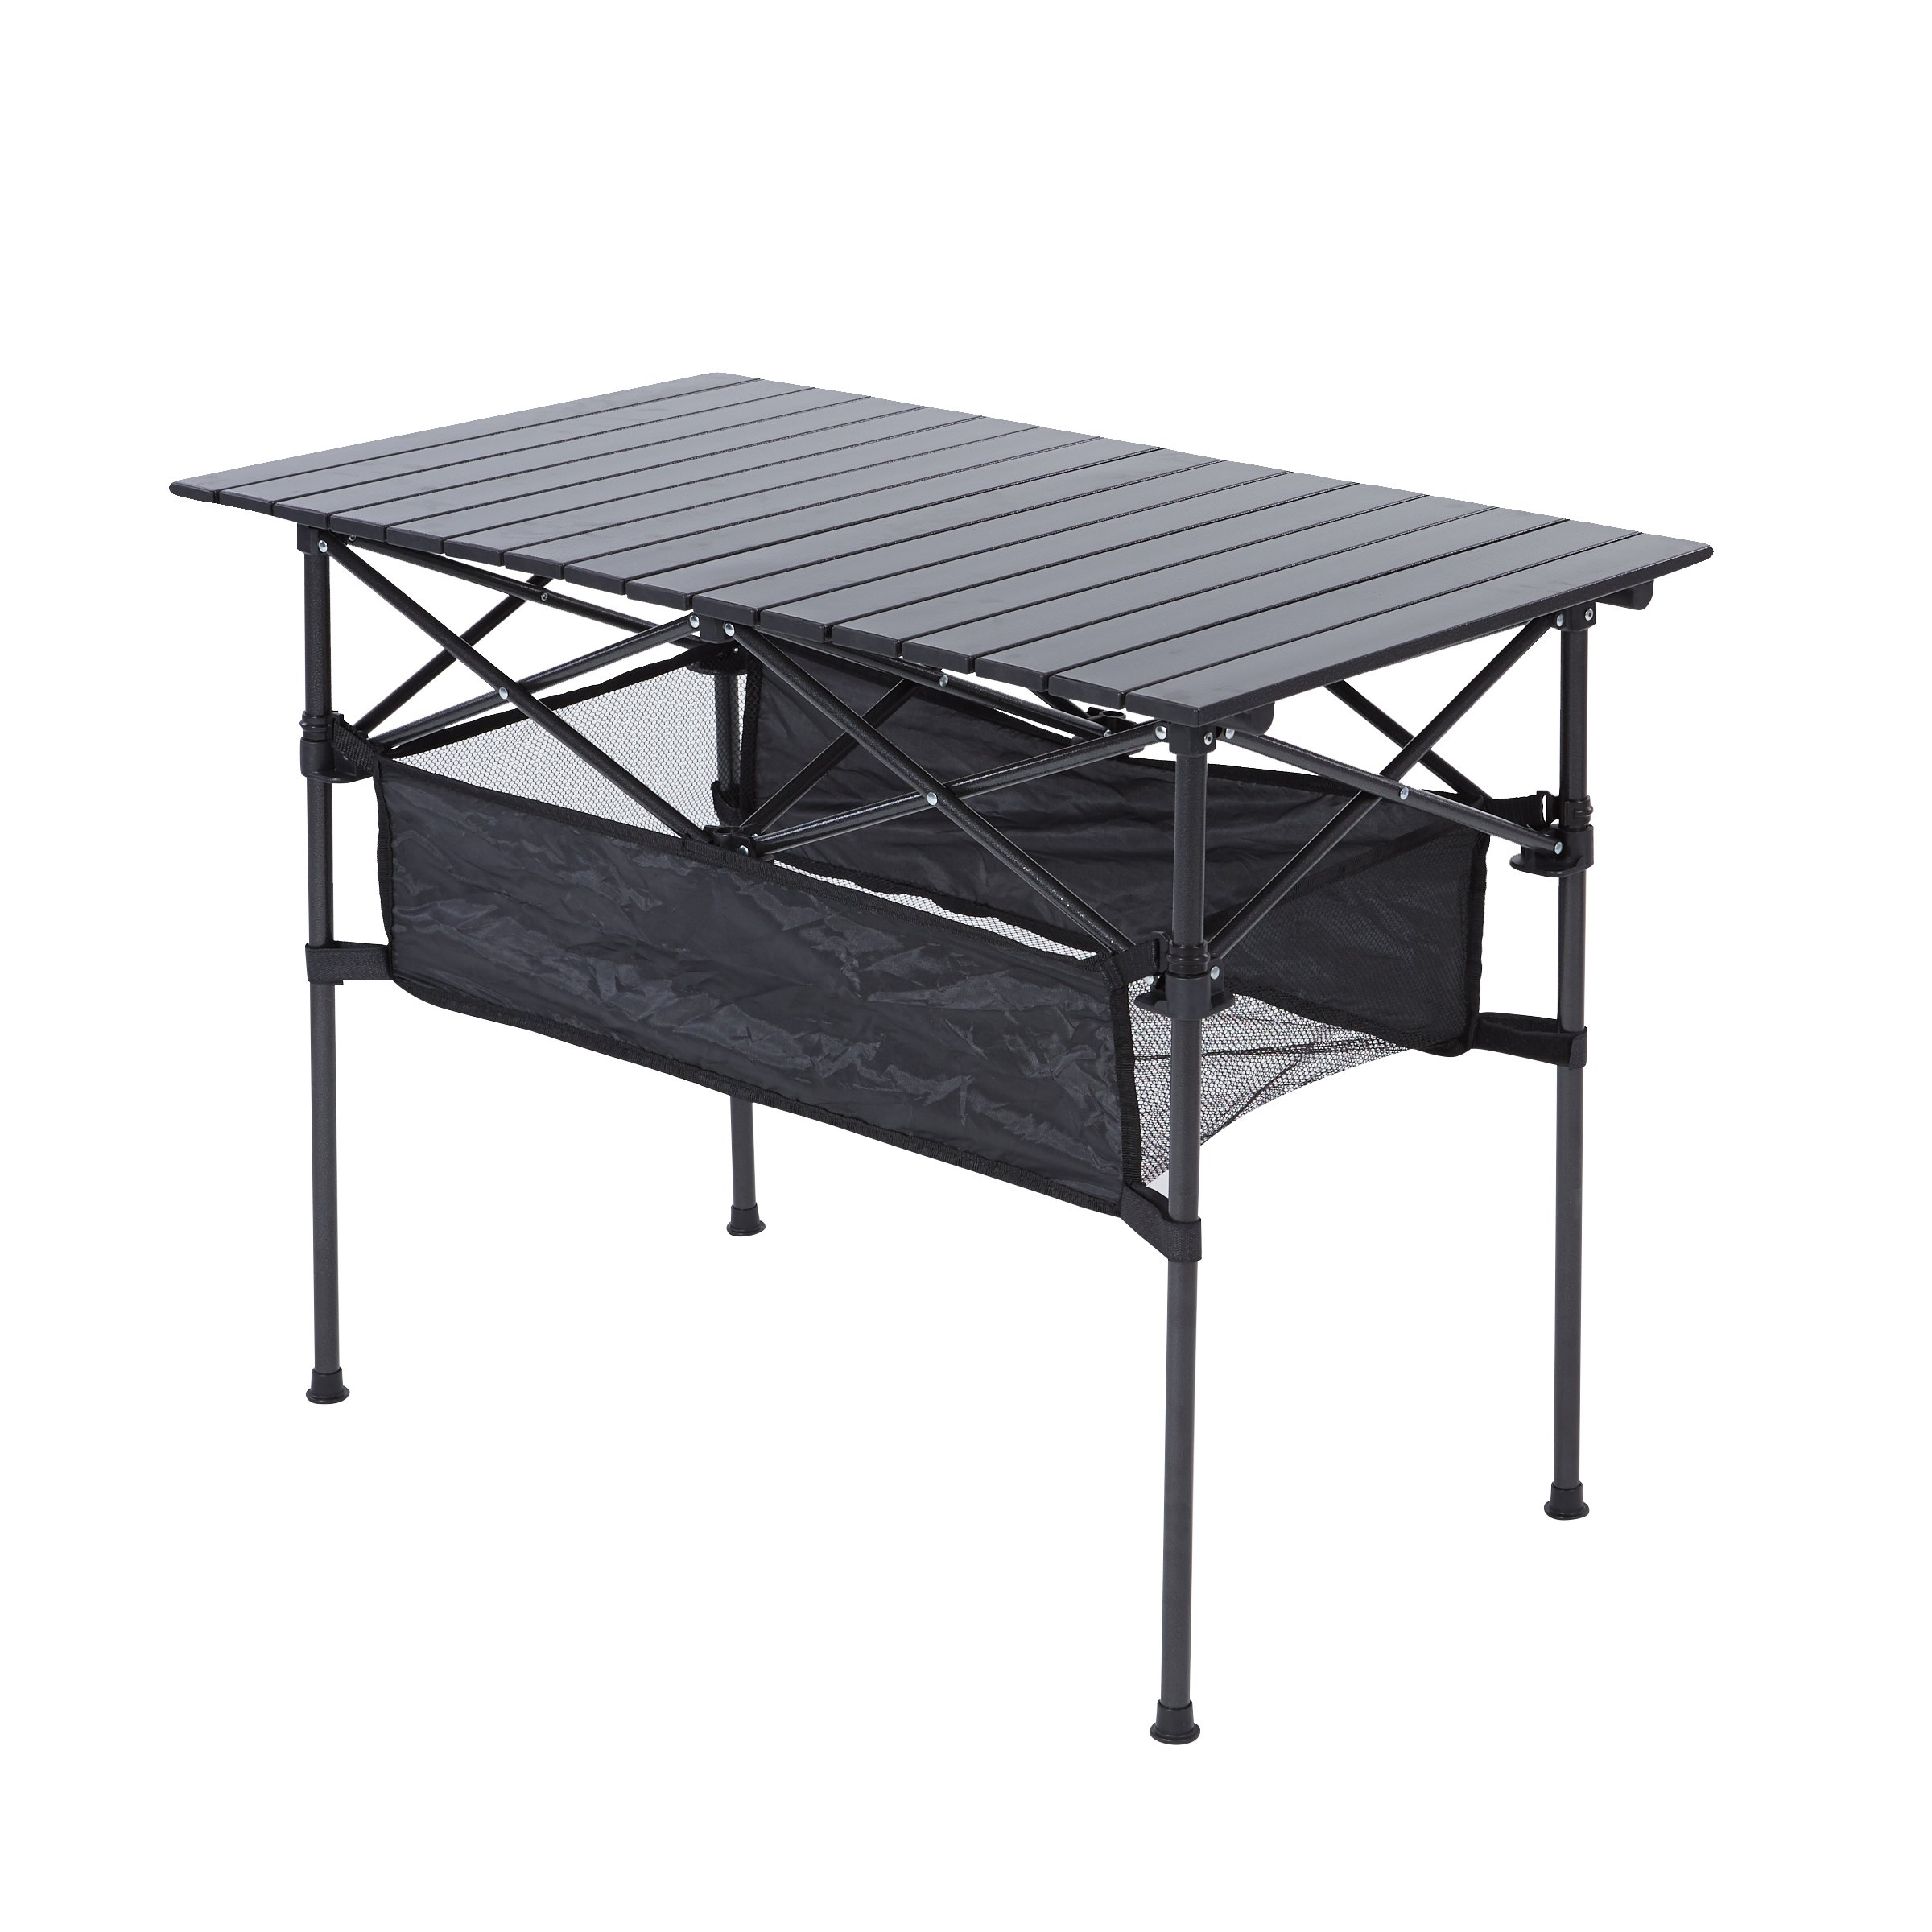 RORAIMA Easy Setup Compact Aluminum Camping Folding Party Table 120 Lbs Capacity Great Outdoor Camping, BBQ Party in Your Backyard Also Suitable Family 6-8 Product Size 60''x 31.5''x 27